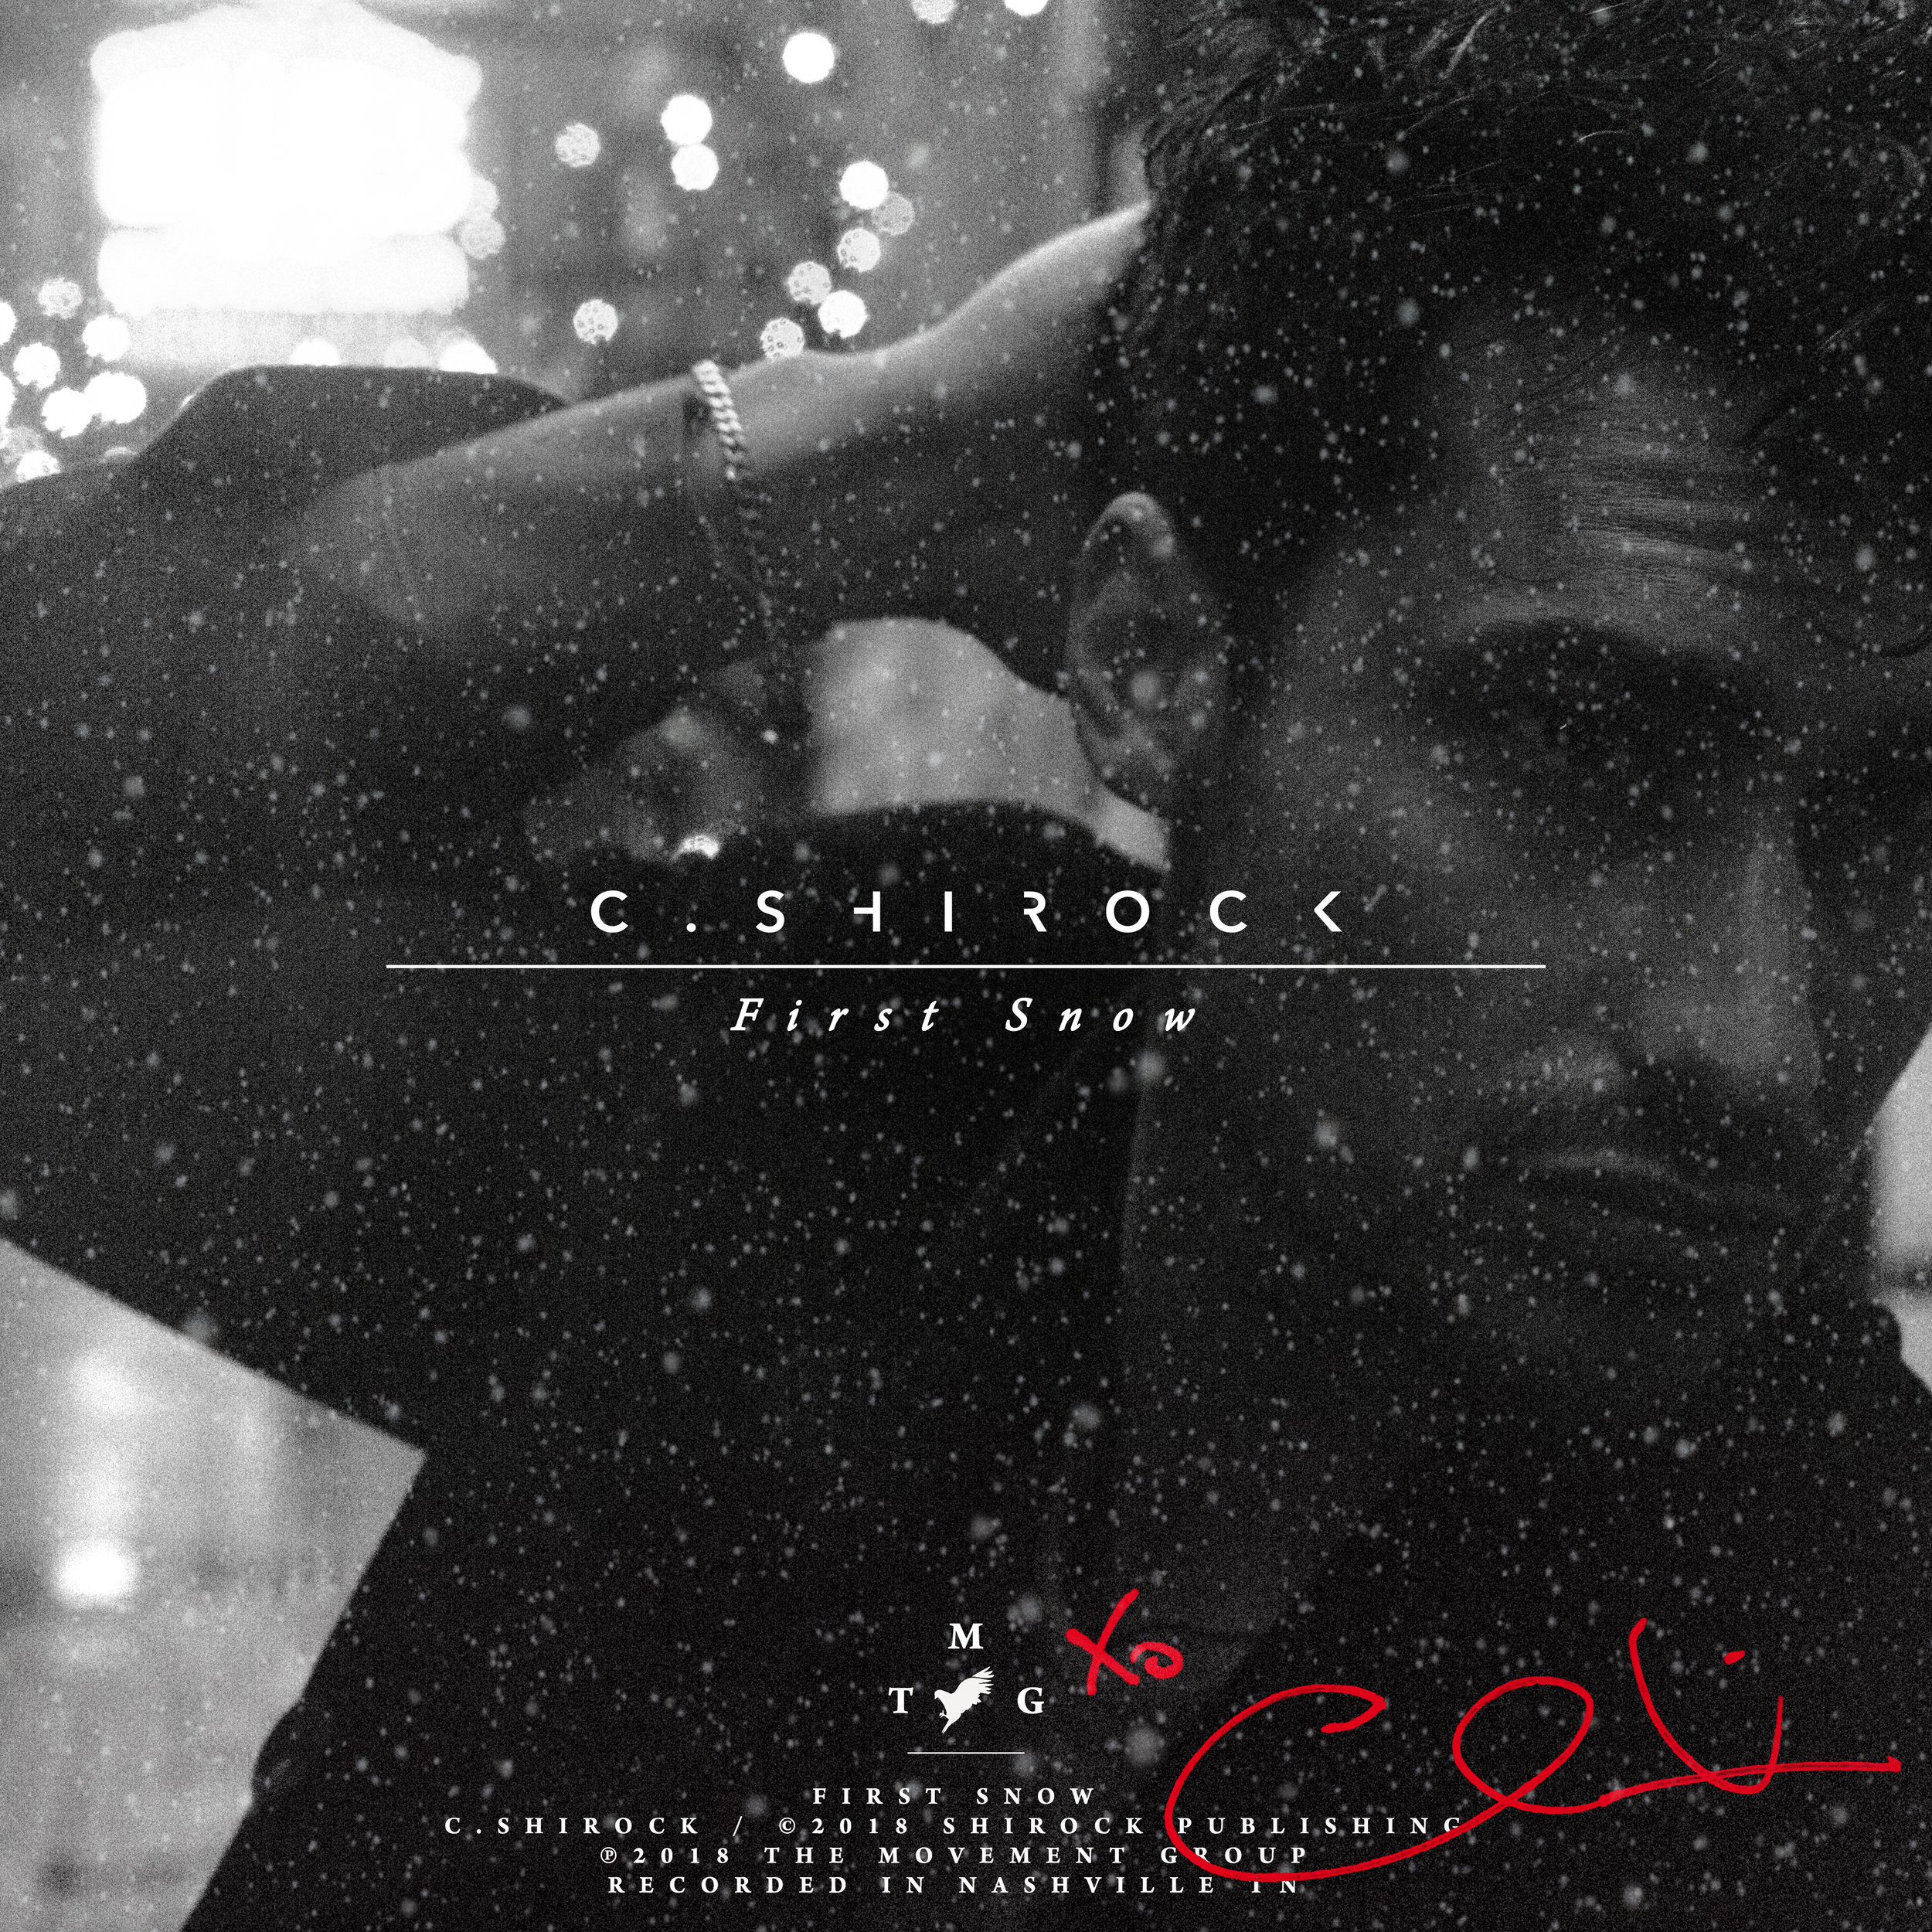 C. SHIROCK  First Snow - Single Photographed by: Emilia Paré